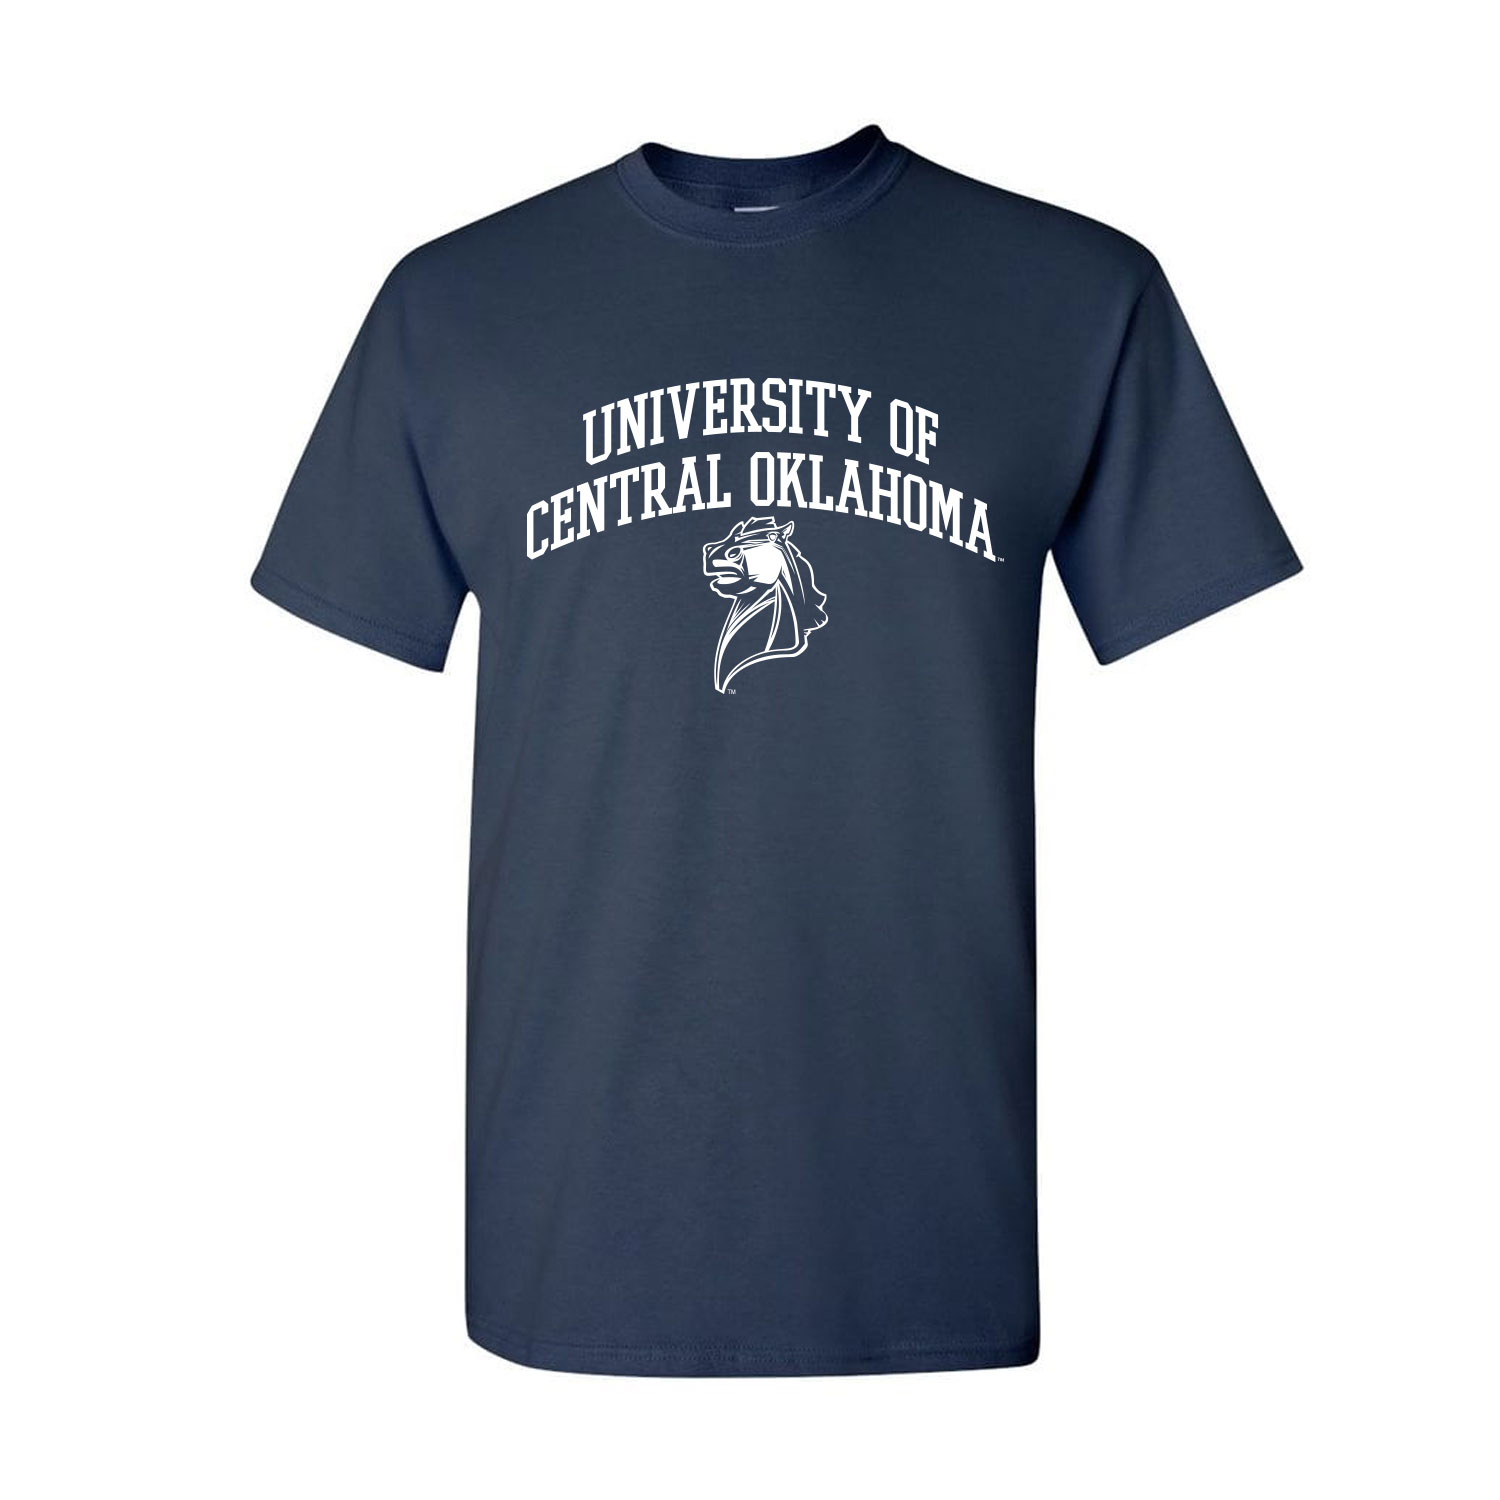 University of Central Oklahoma Tee